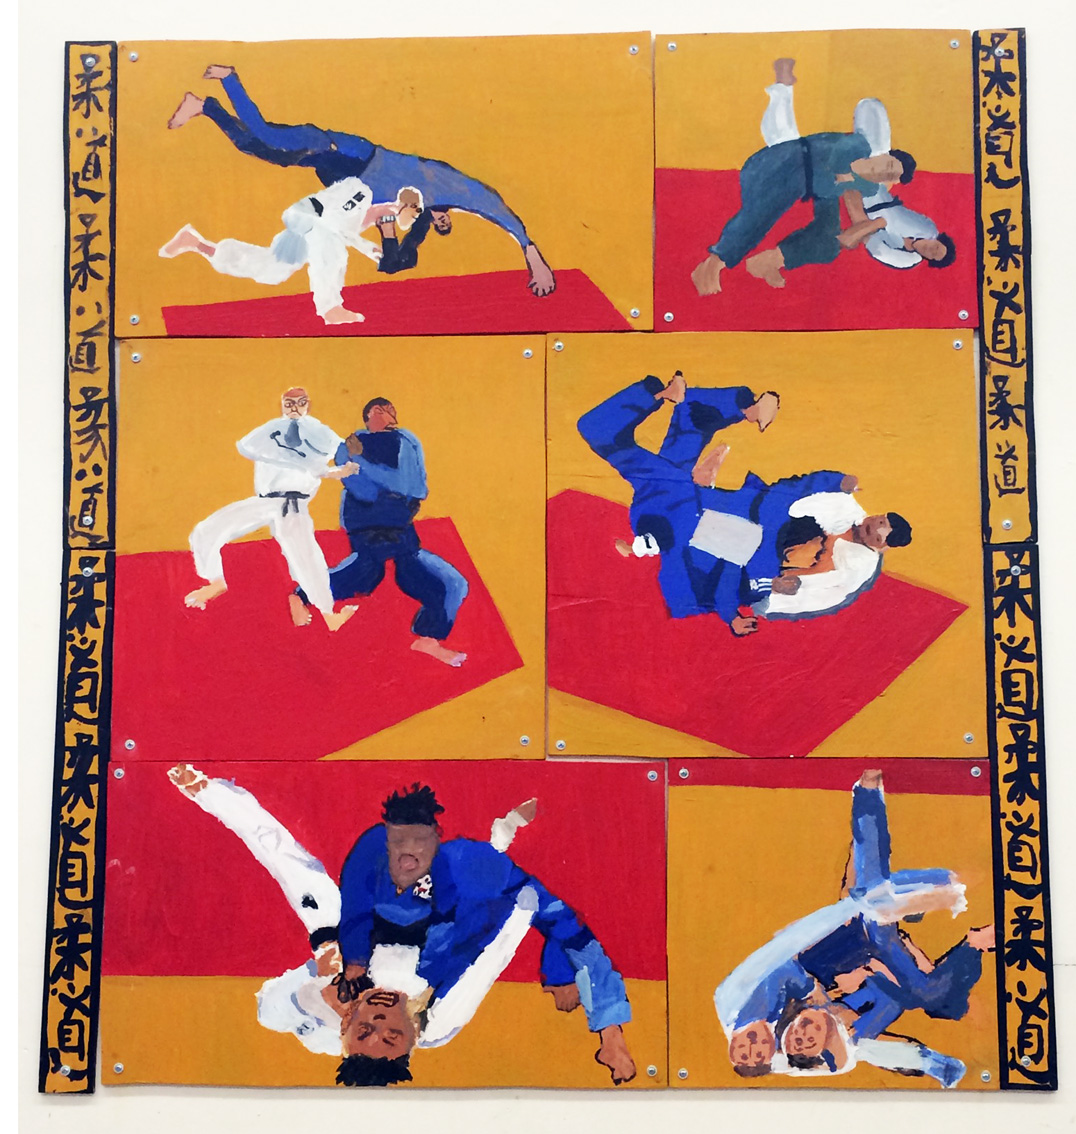 London N1 - Judo series - Painted wood - 1.20m x 1.10m - 2016